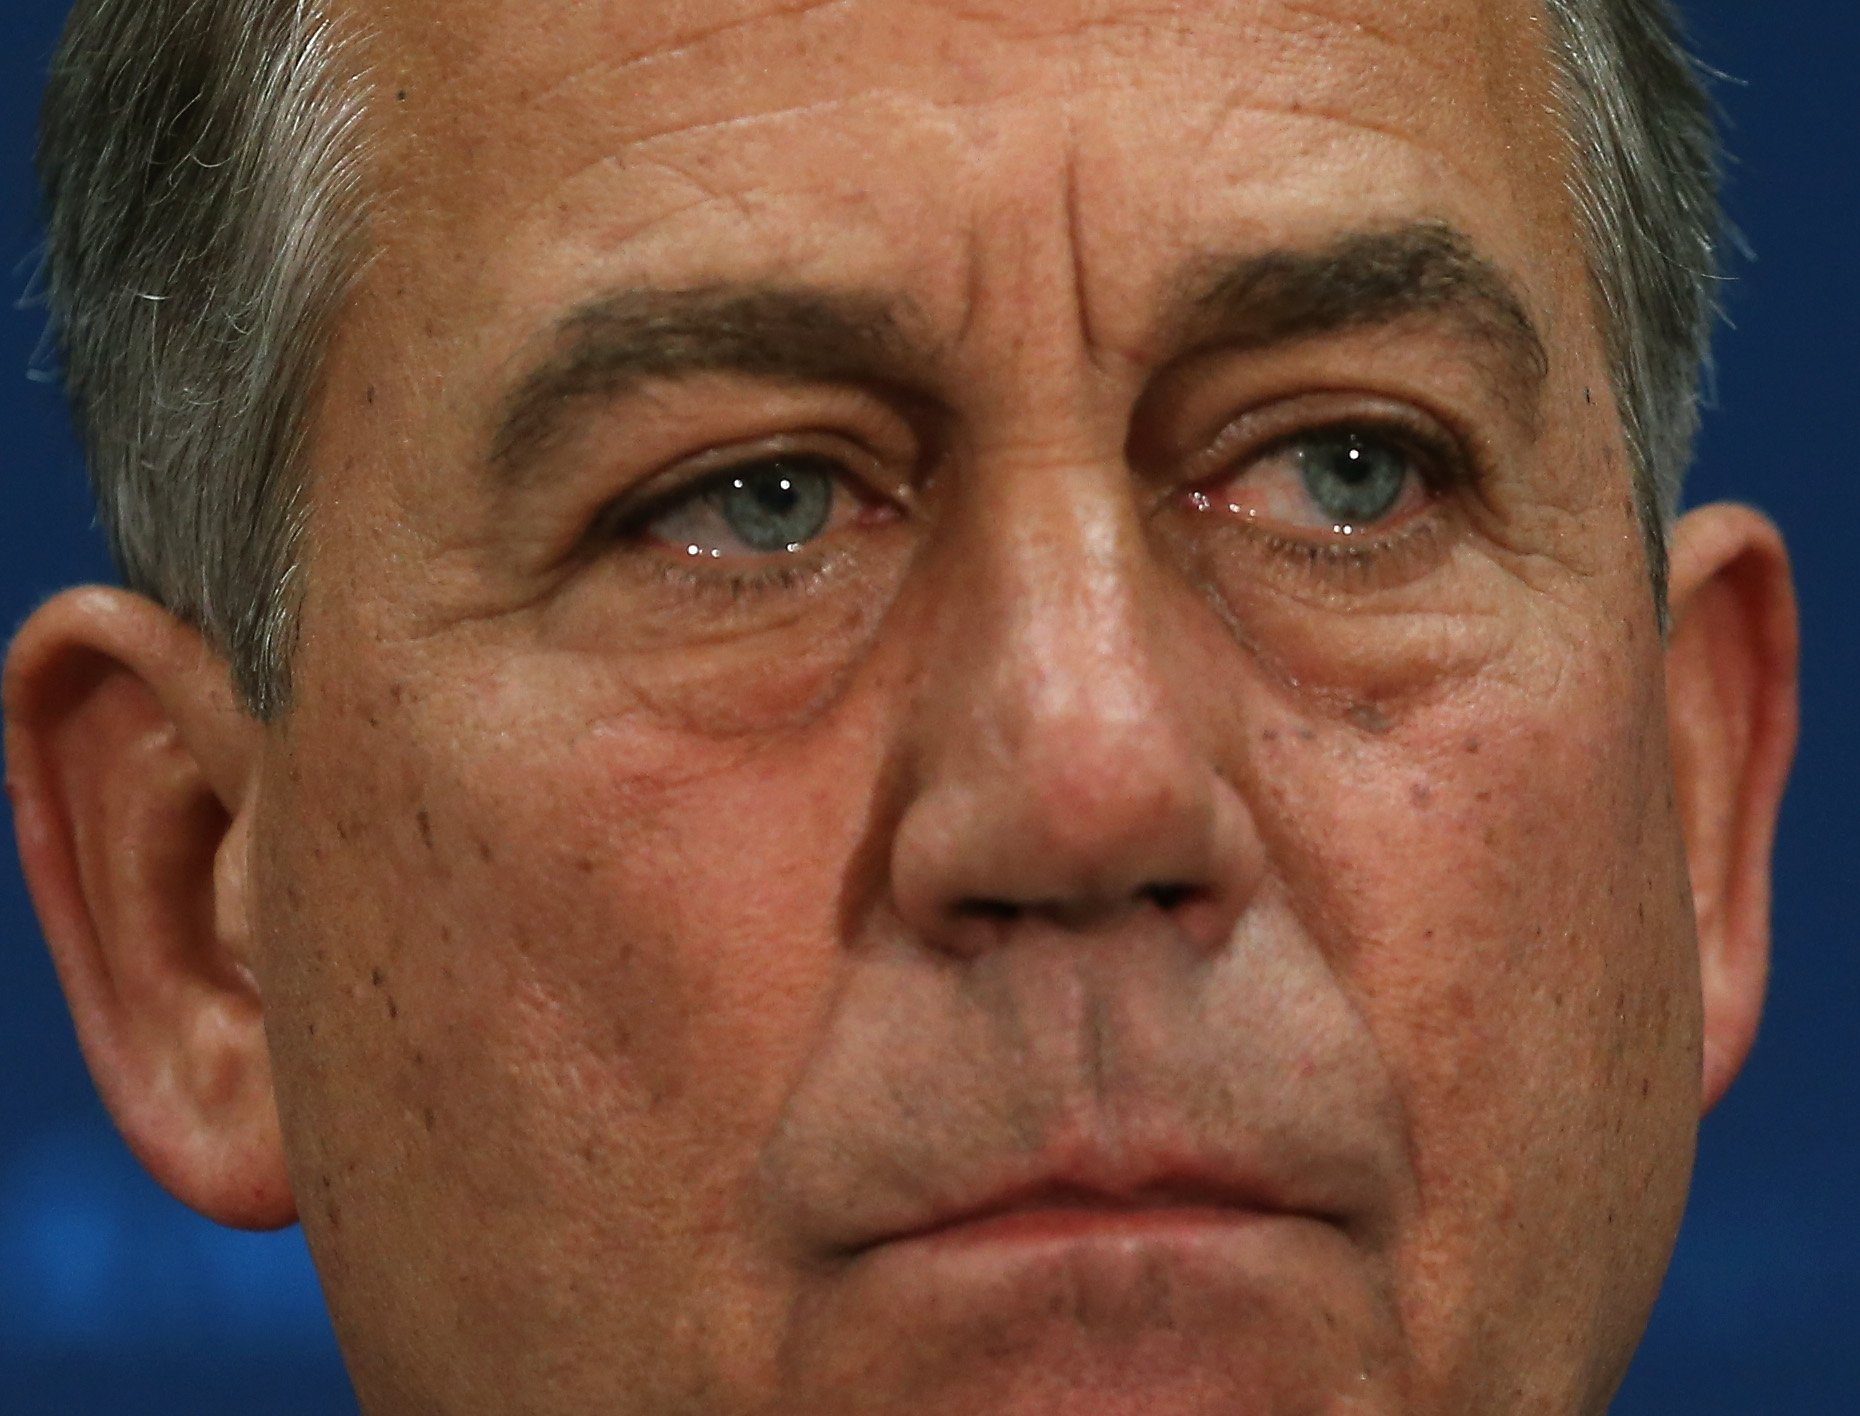 House Speaker John Boehner participates in a news conference at the U.S. Capitol June 10, 2014 in Washington, DC.